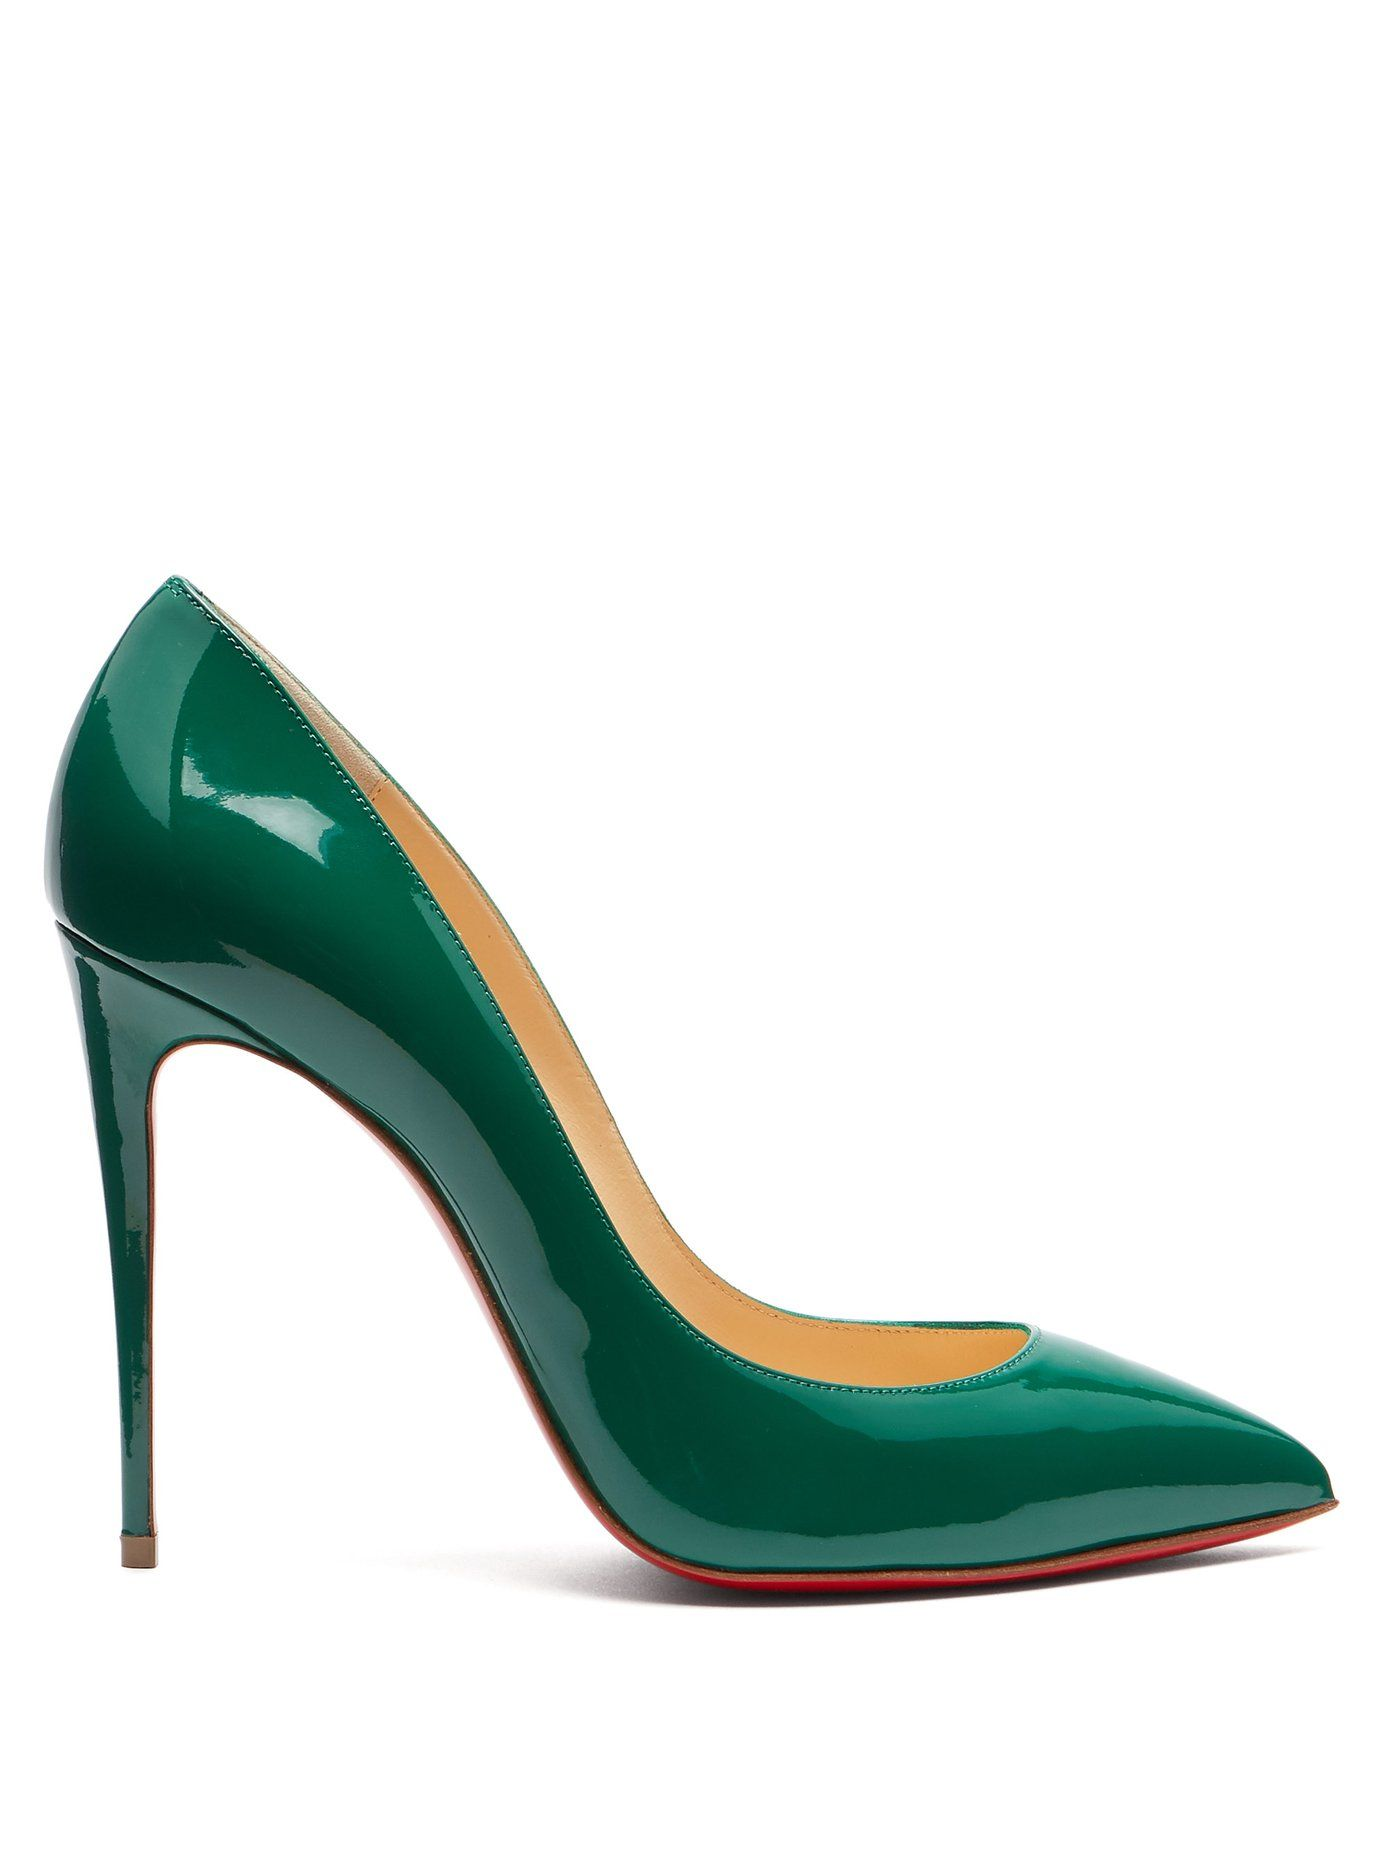 8507f30ef75 Pigalle Follies 100 patent leather pumps | Christian Louboutin ...